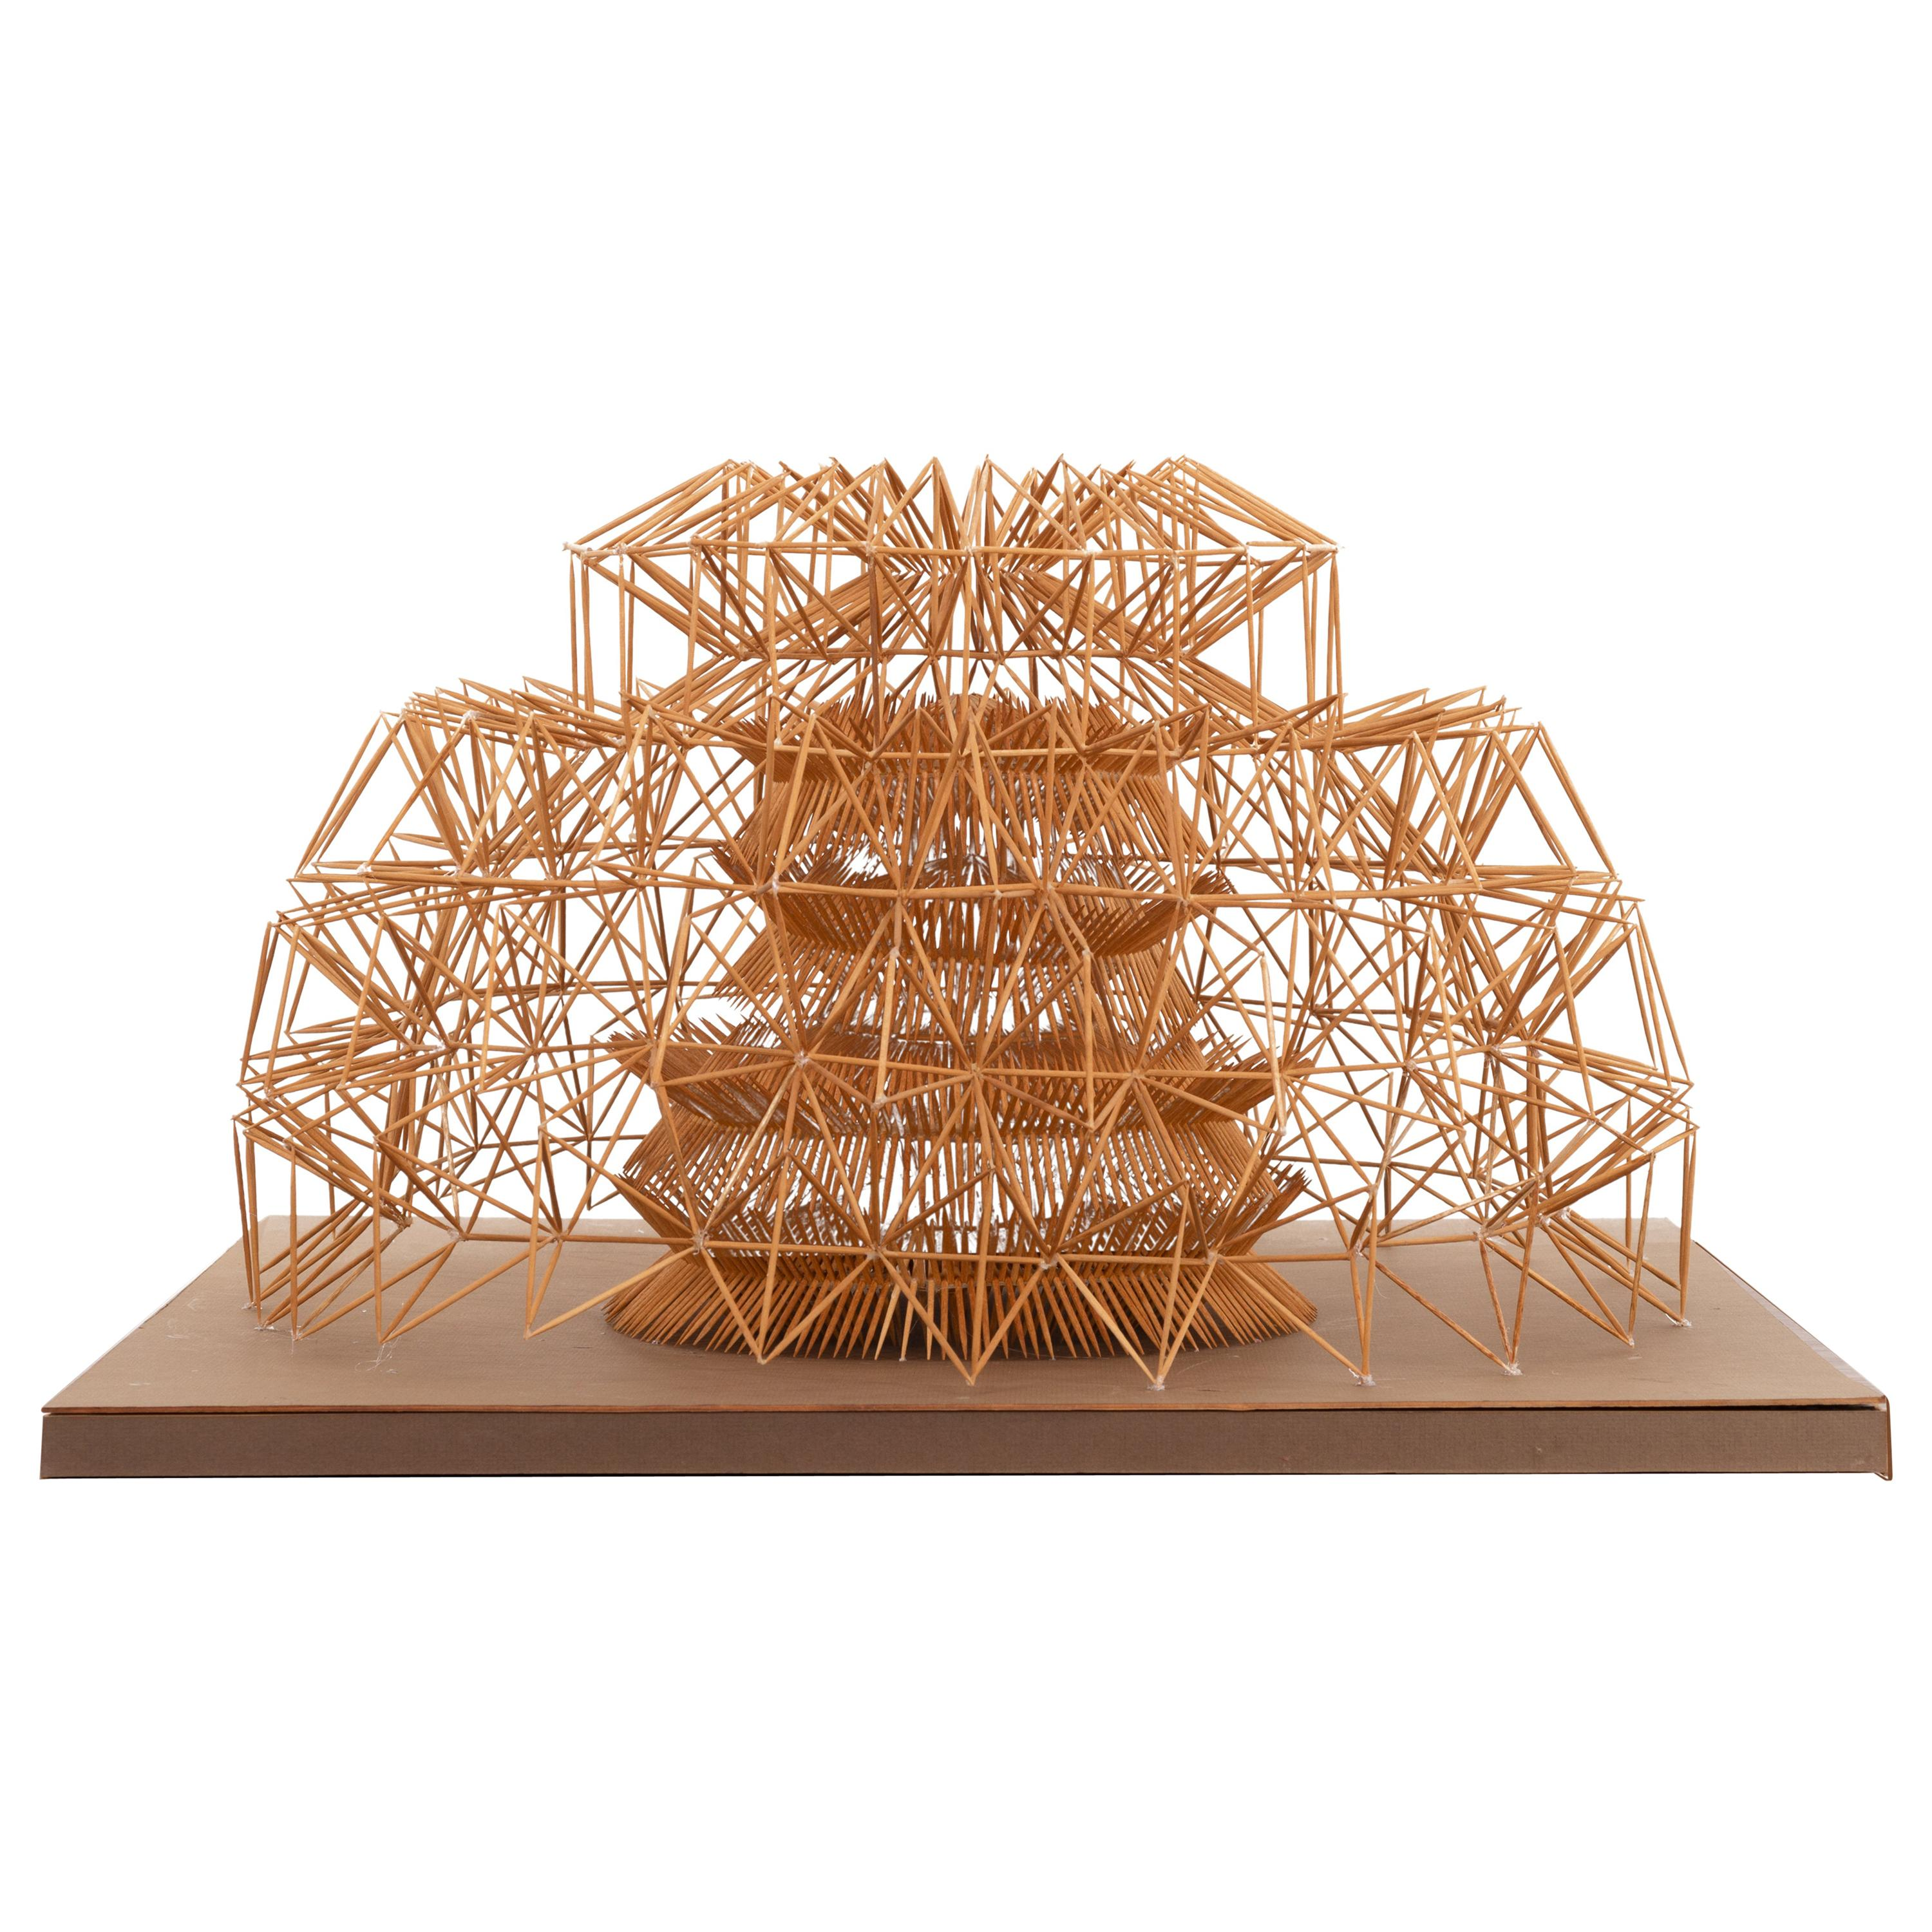 Irving Harper Toothpick Construction Dome